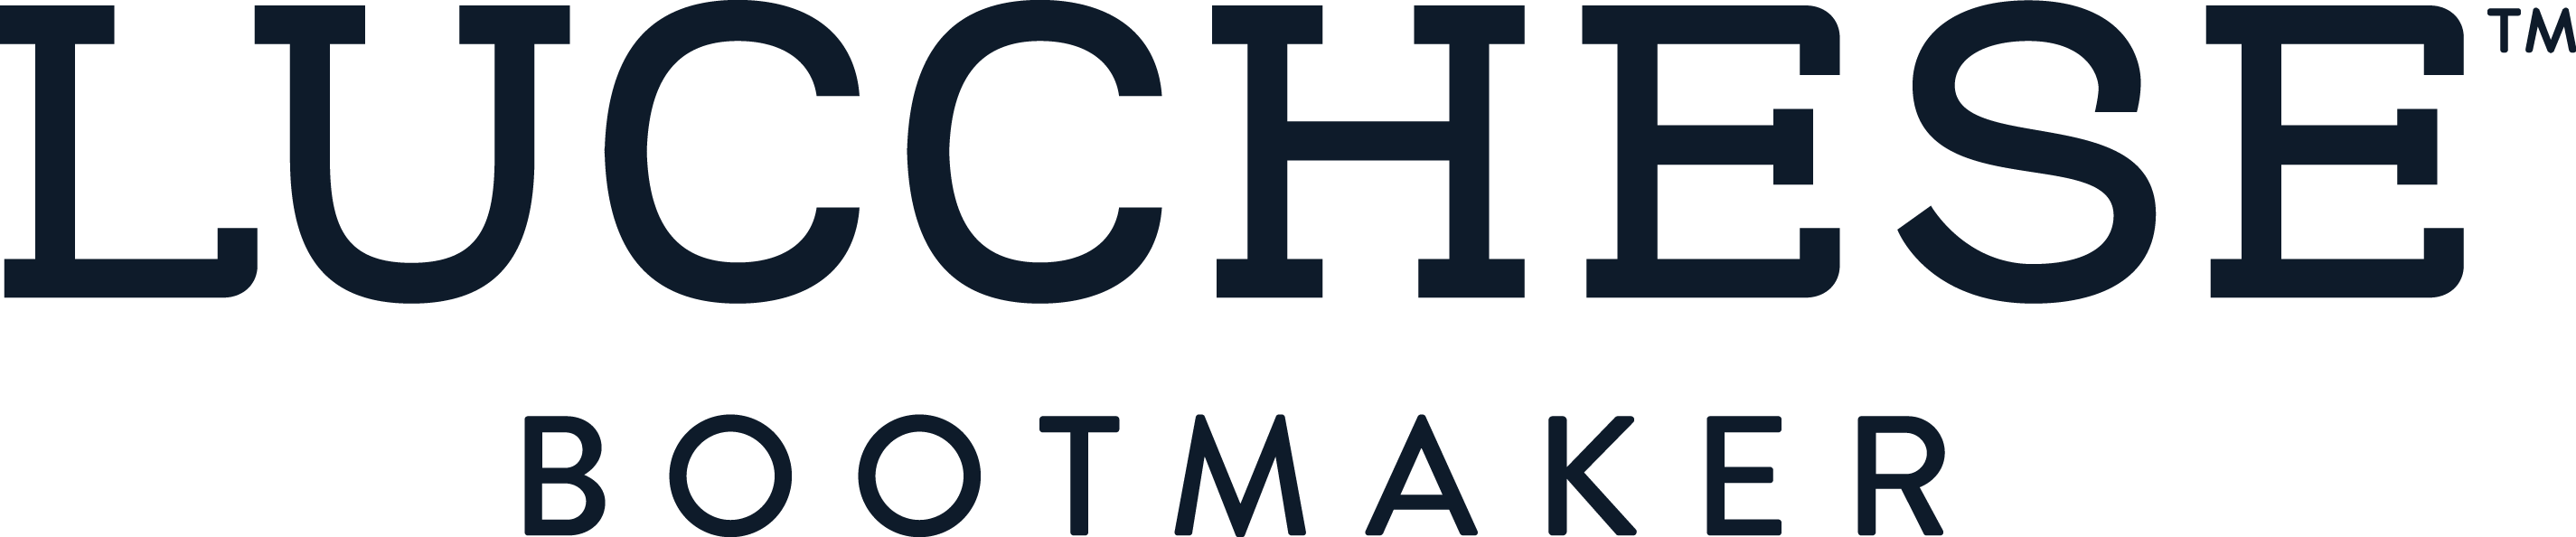 Lucchese Promo Code